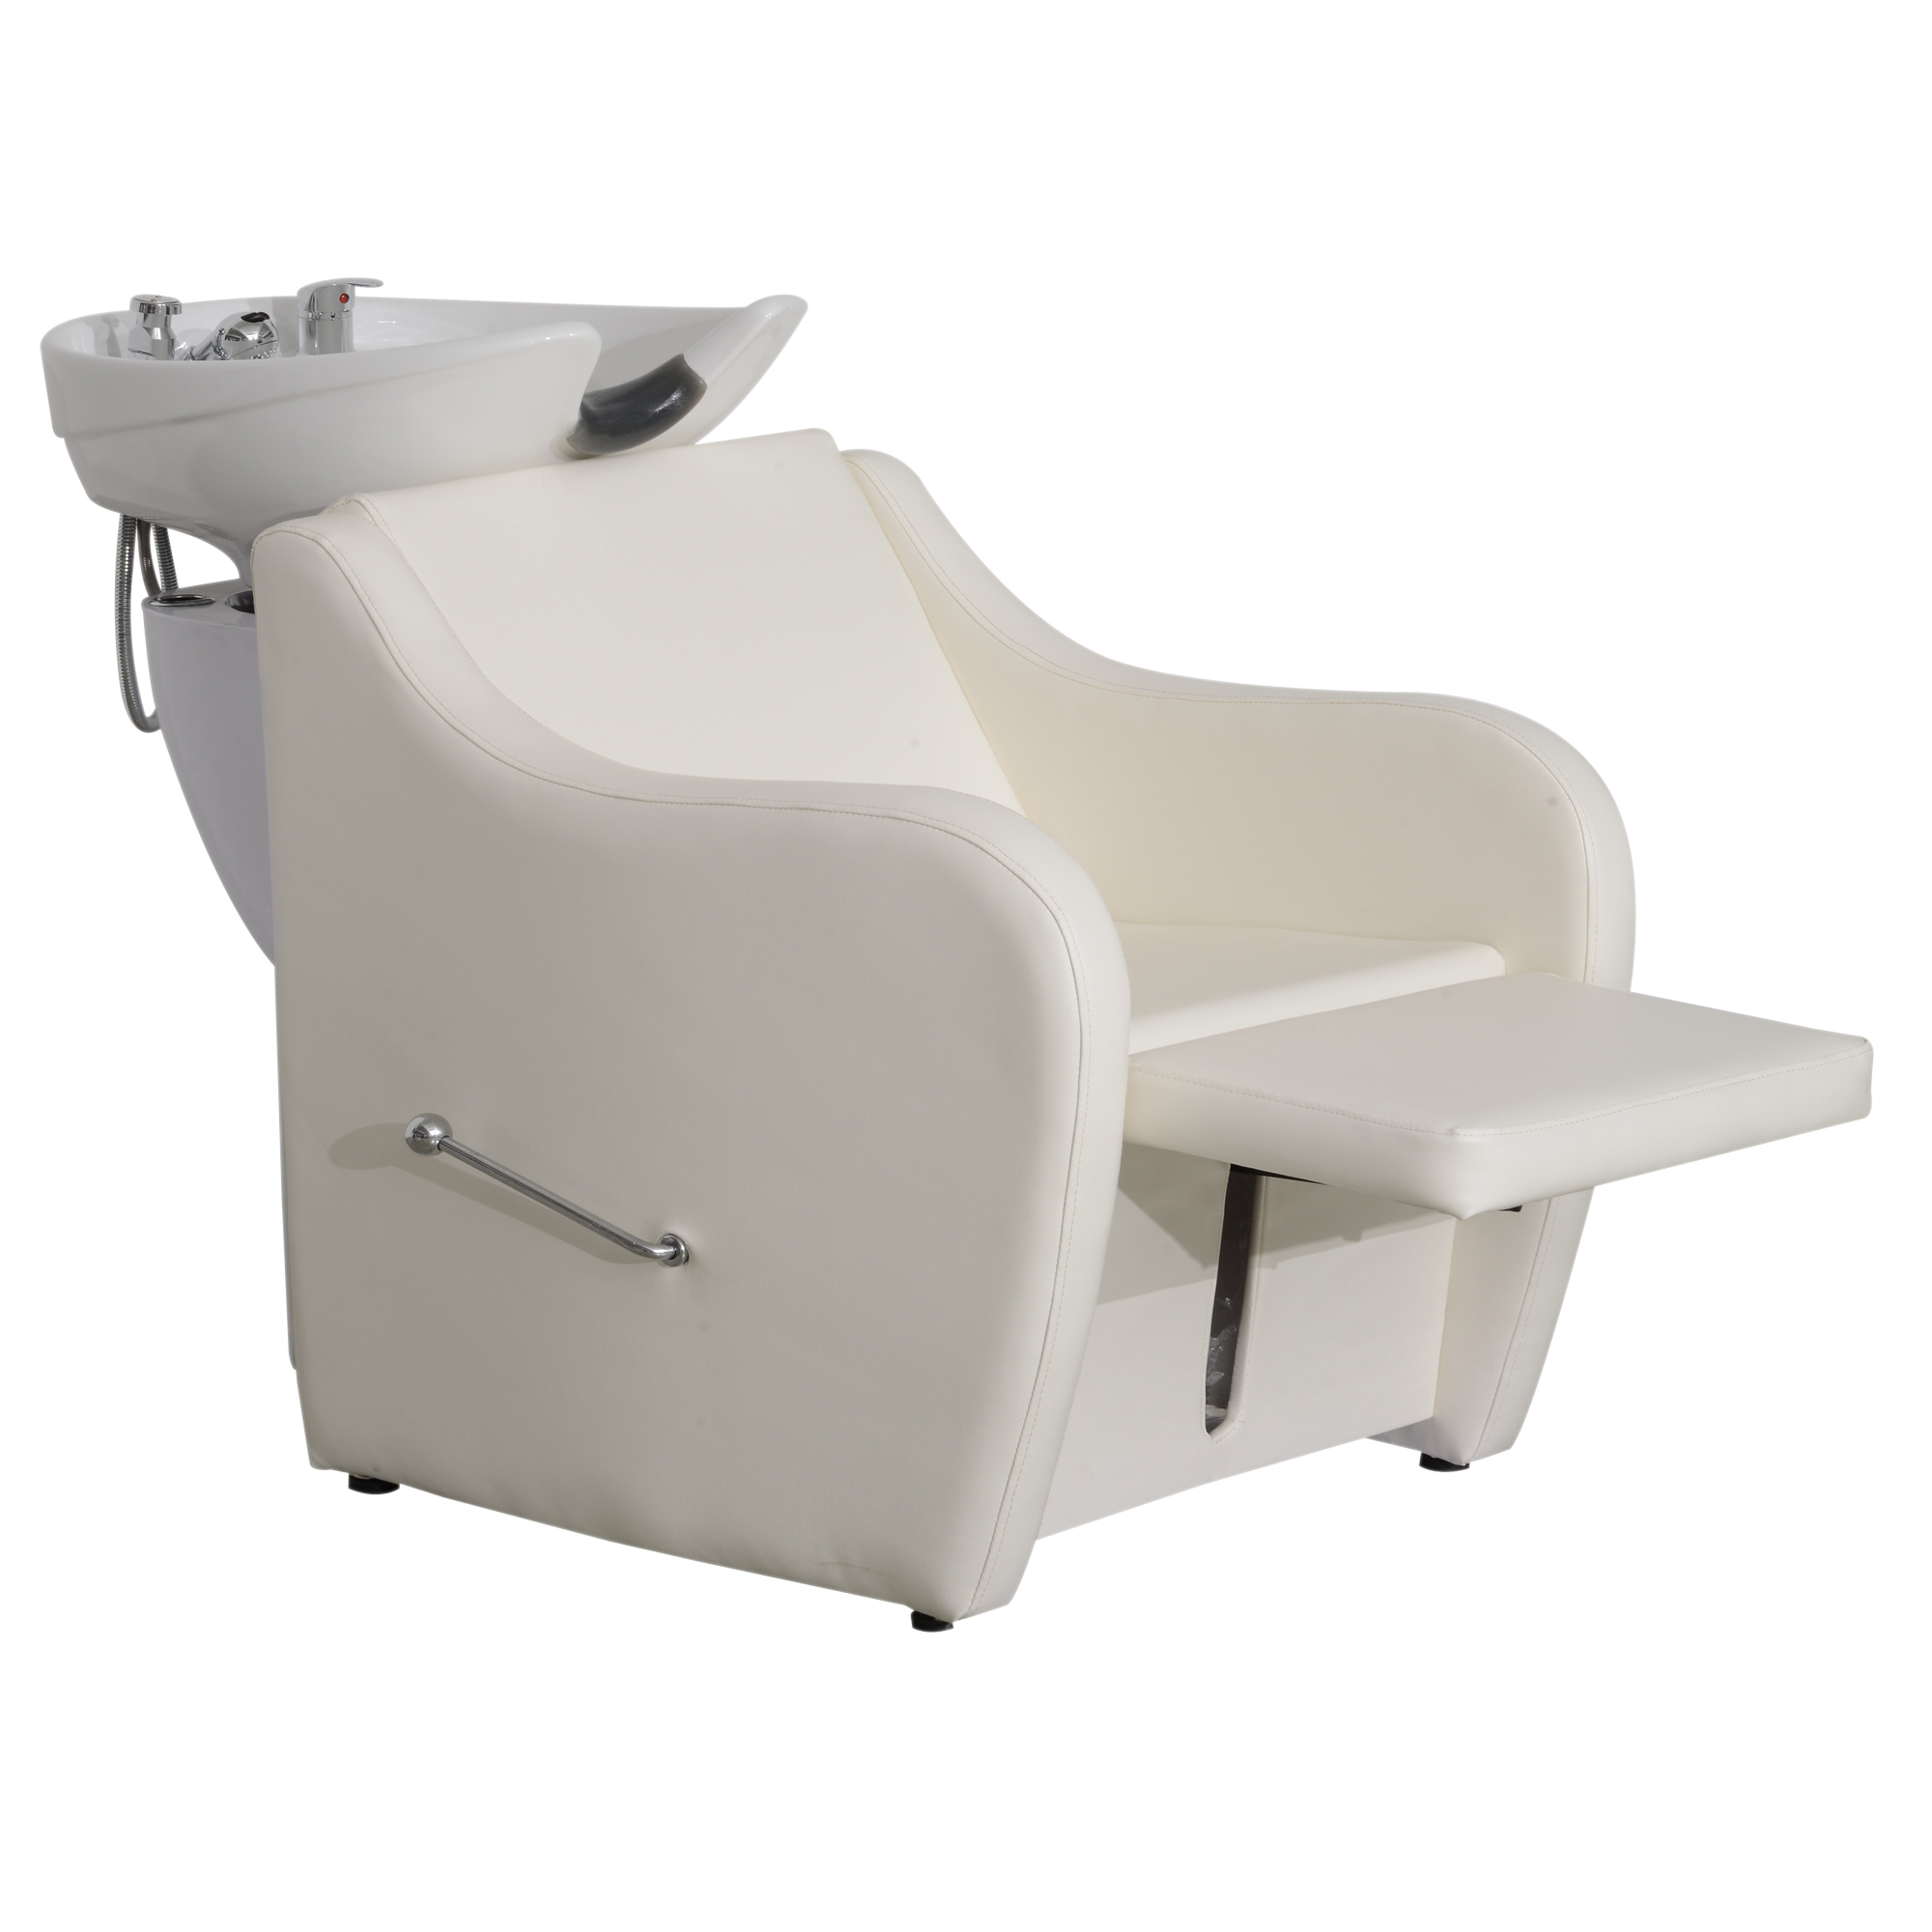 backwash chairs for sale sealy office chair ceramic shampoo bowl sink station spa salon